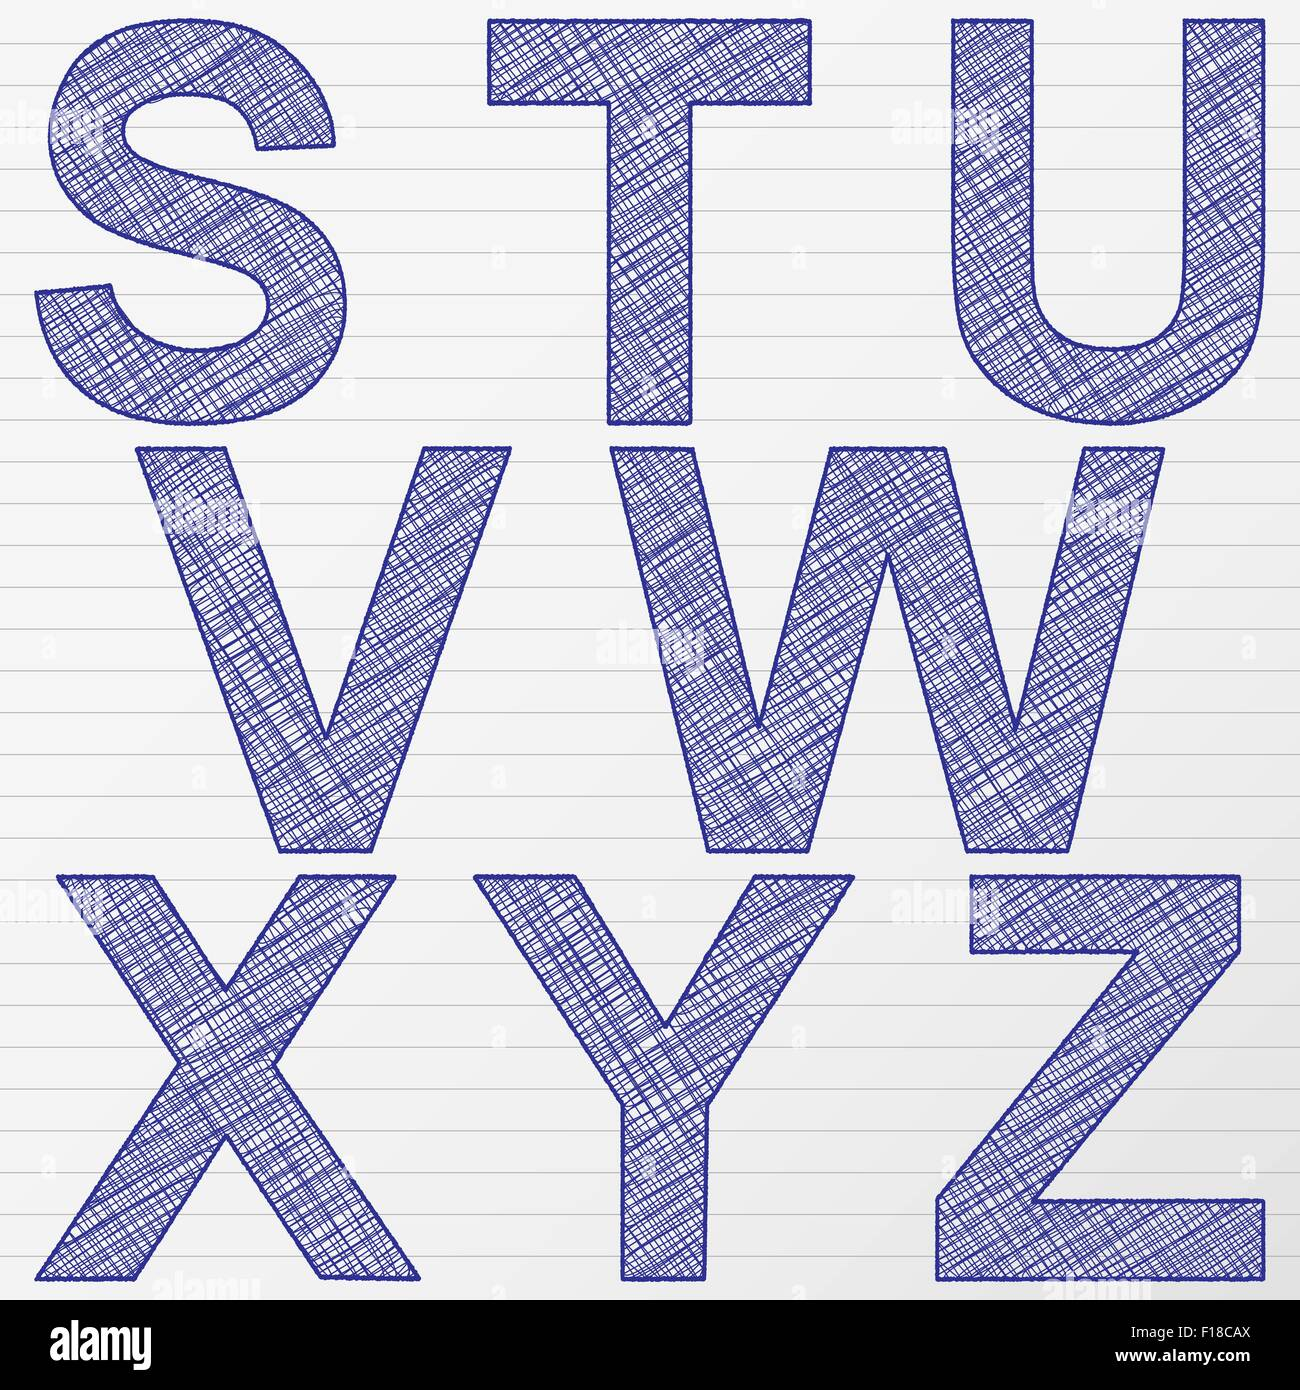 scratch letters from s to z vector illustration stock vector art